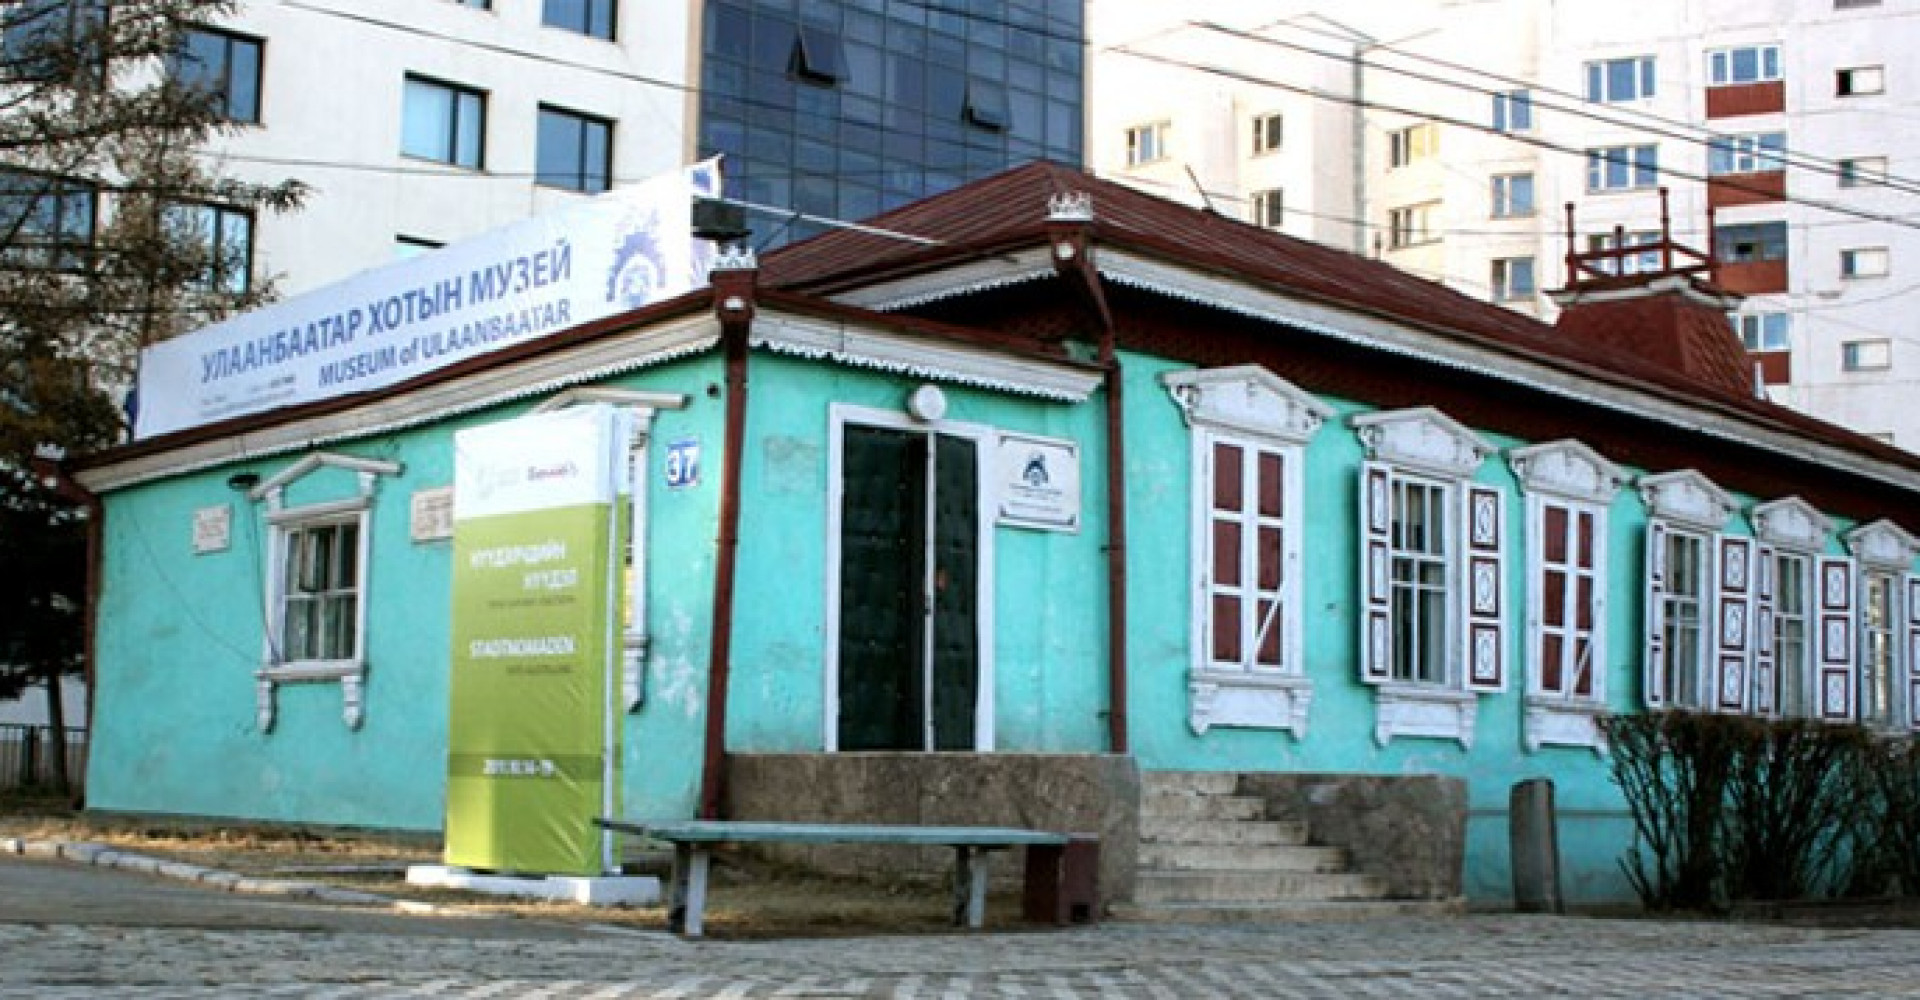 Museum Of Ulaanbaatar City History And Reformation